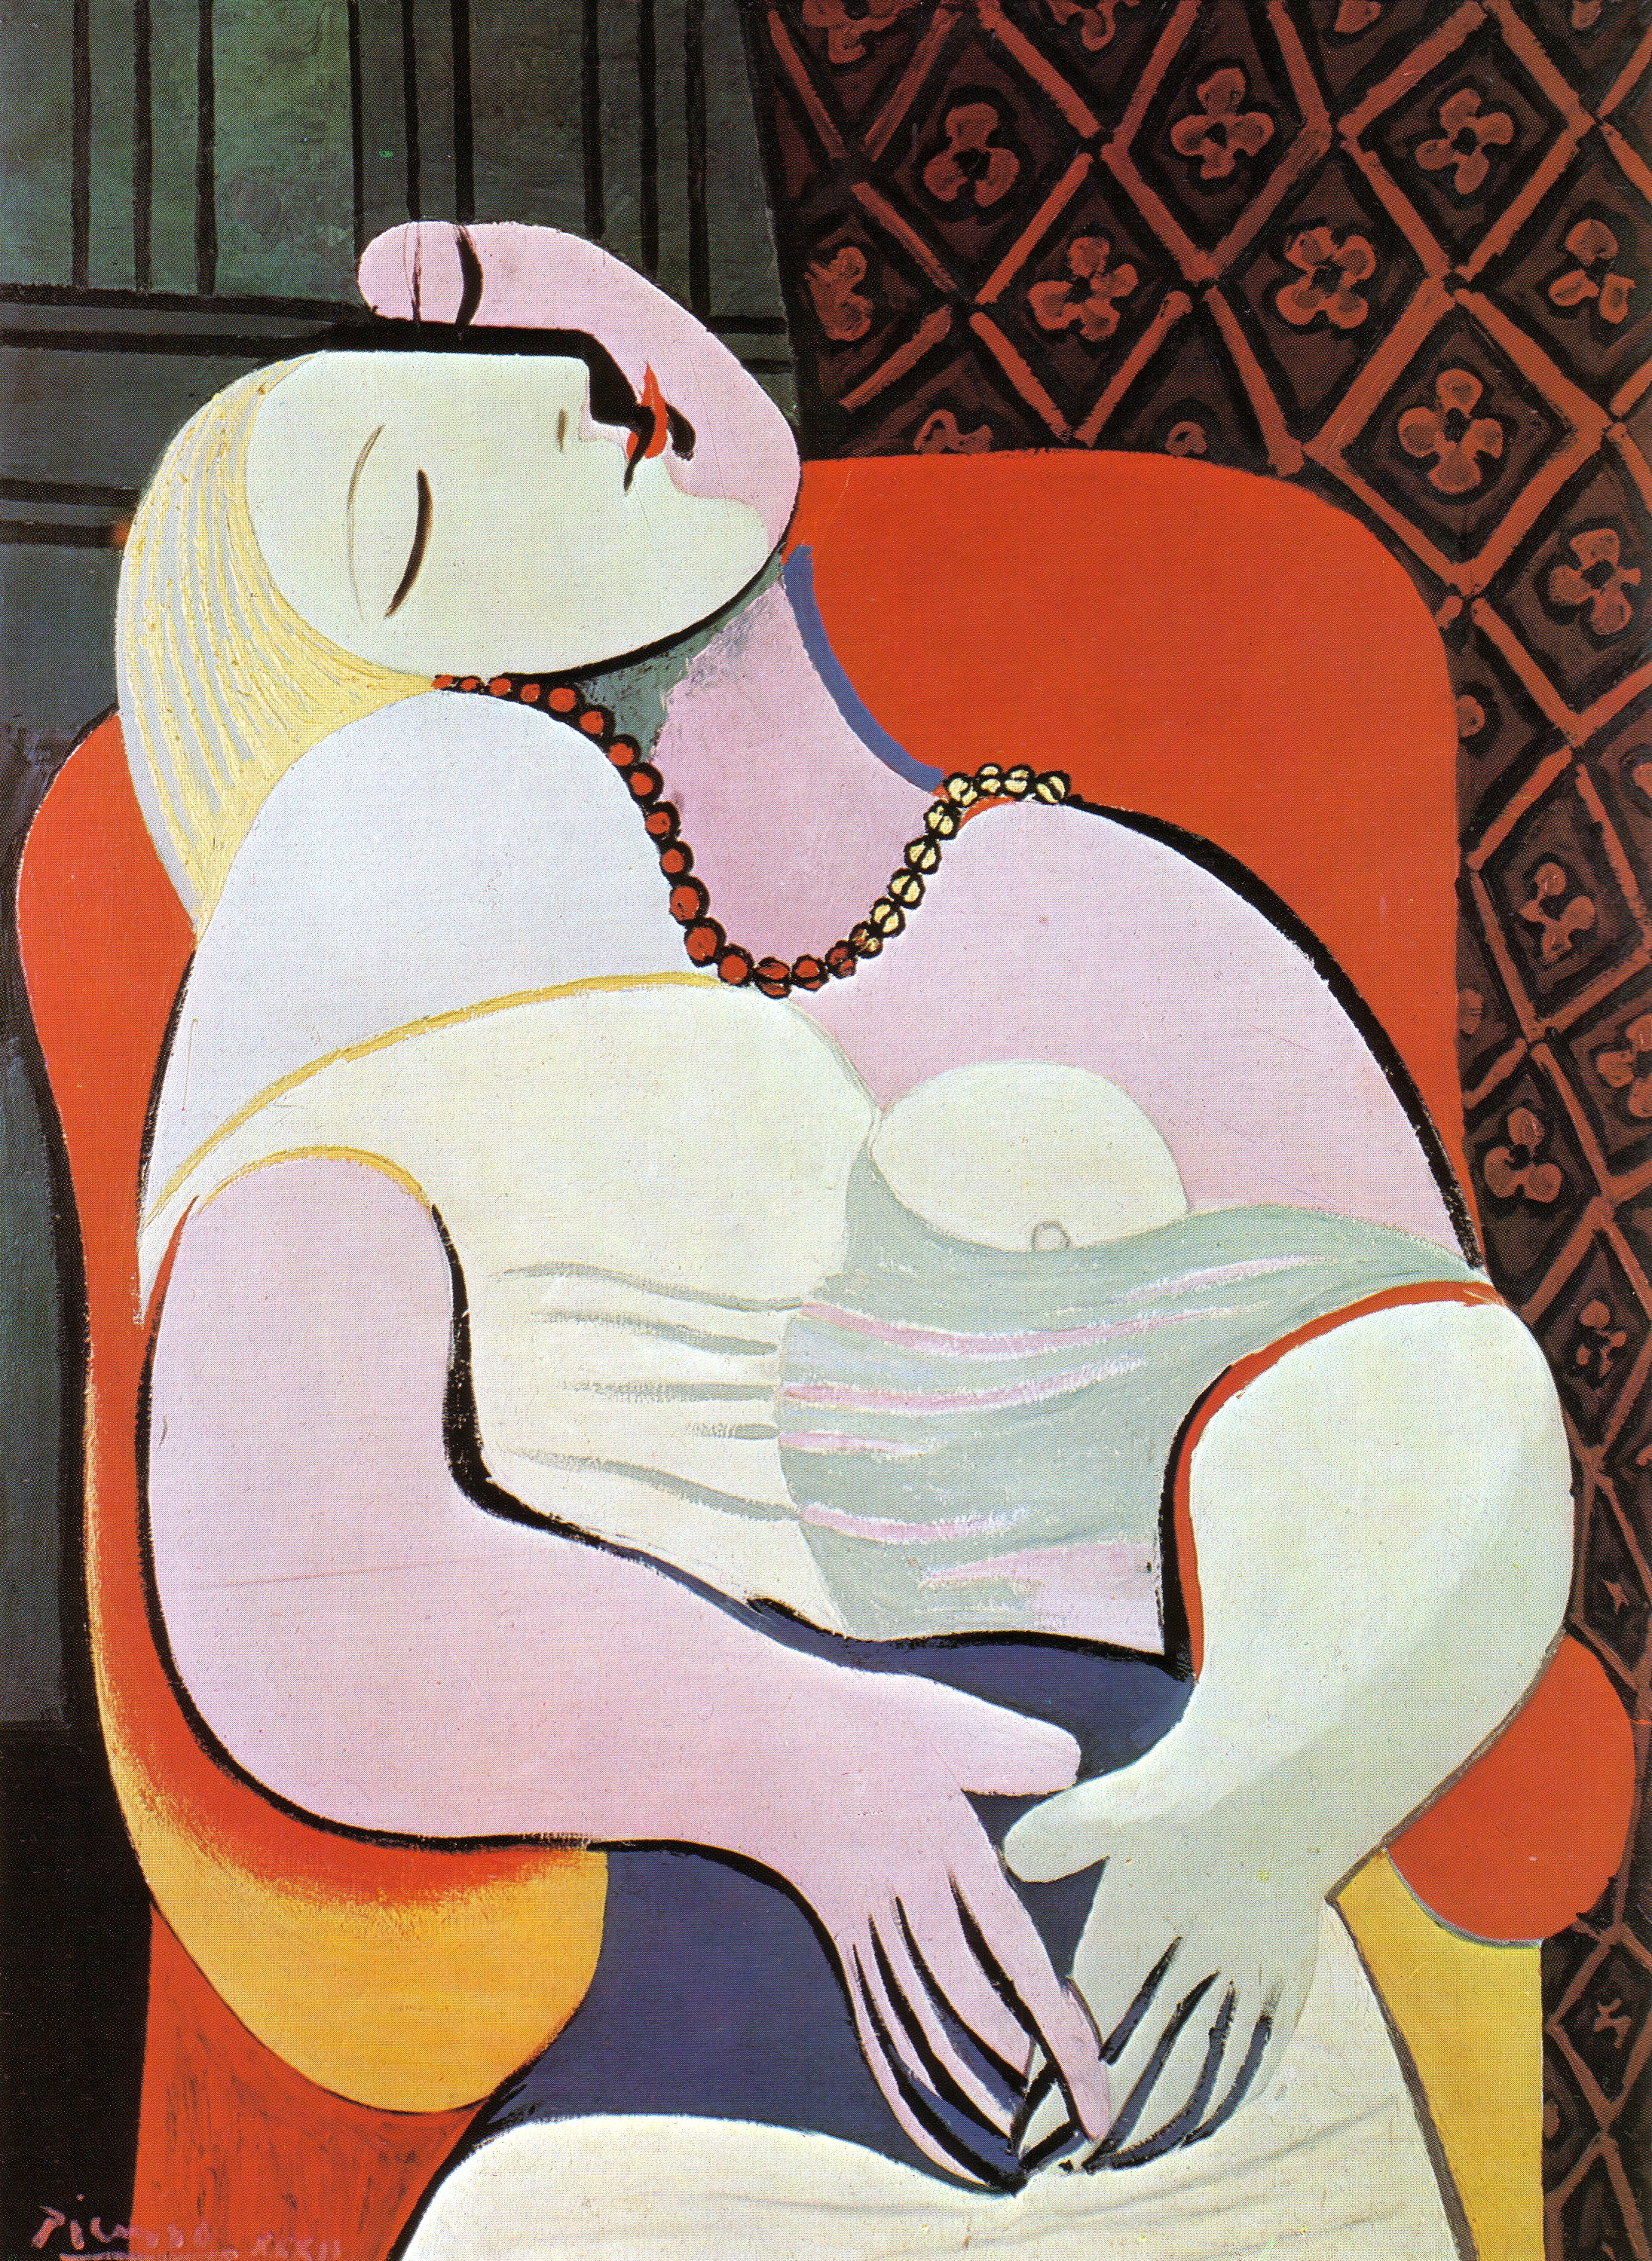 Woman Asleep in an Armchair The Dream 1932